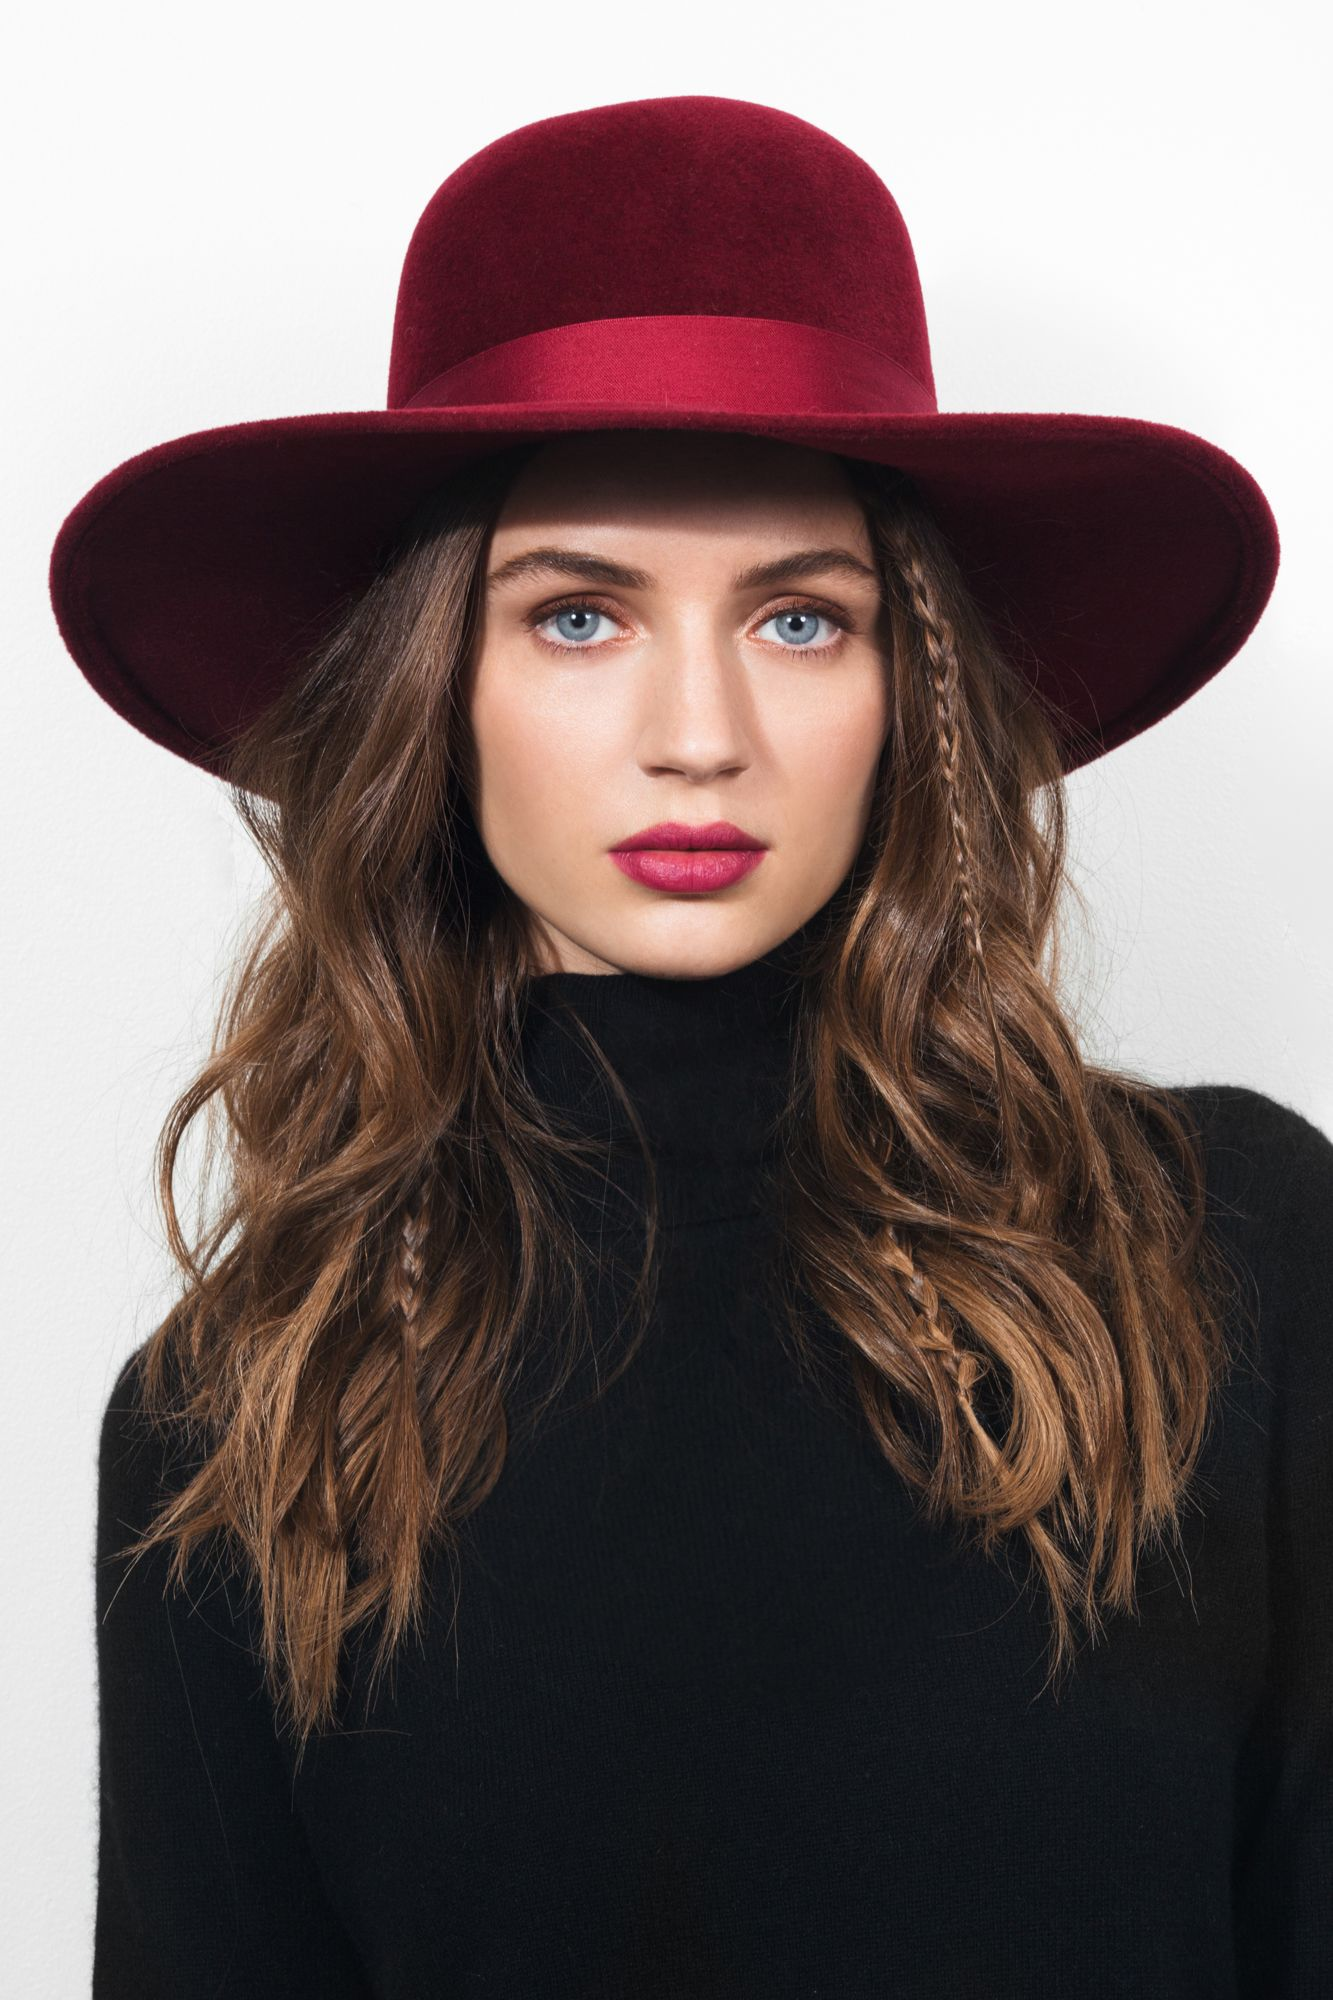 "<p>With the band? Road-tripping through the Southwest? Top off loose waves and a handful of peekaboo braids with a felt hat in rich ruby.</p><p><strong>Gigi Burris</strong> Kyleigh Brim Hat, $345, <a href=""http://gigiburris.com/shop/kyleigh-brim-hat"" target=""_blank"">gigiburris.com</a>.</p>"